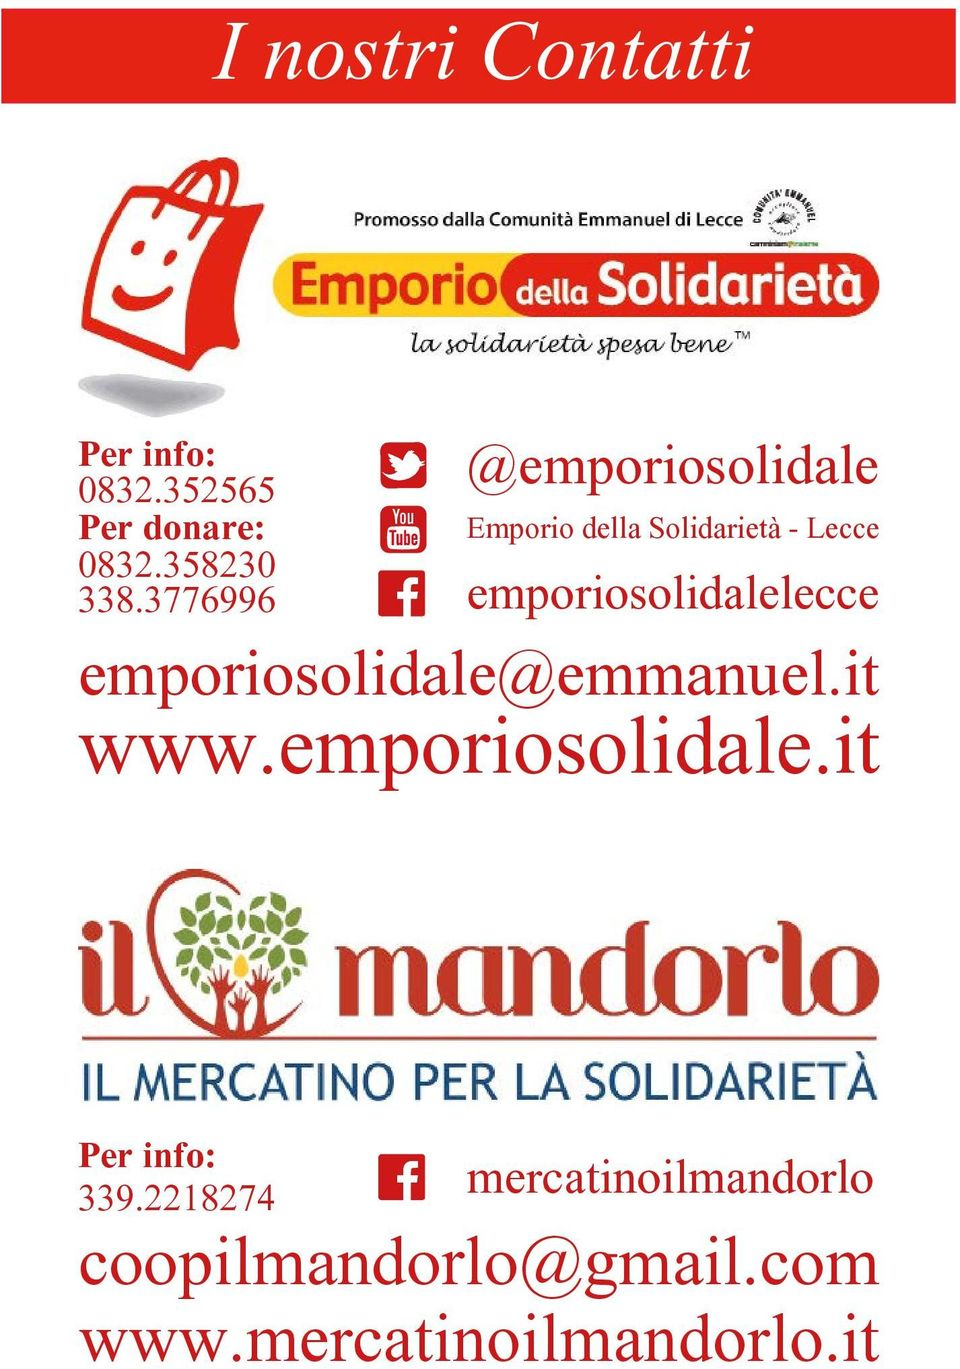 emporiosolidalelecce emporiosolidale@emmanuel.it www.emporiosolidale.it Per info: 339.